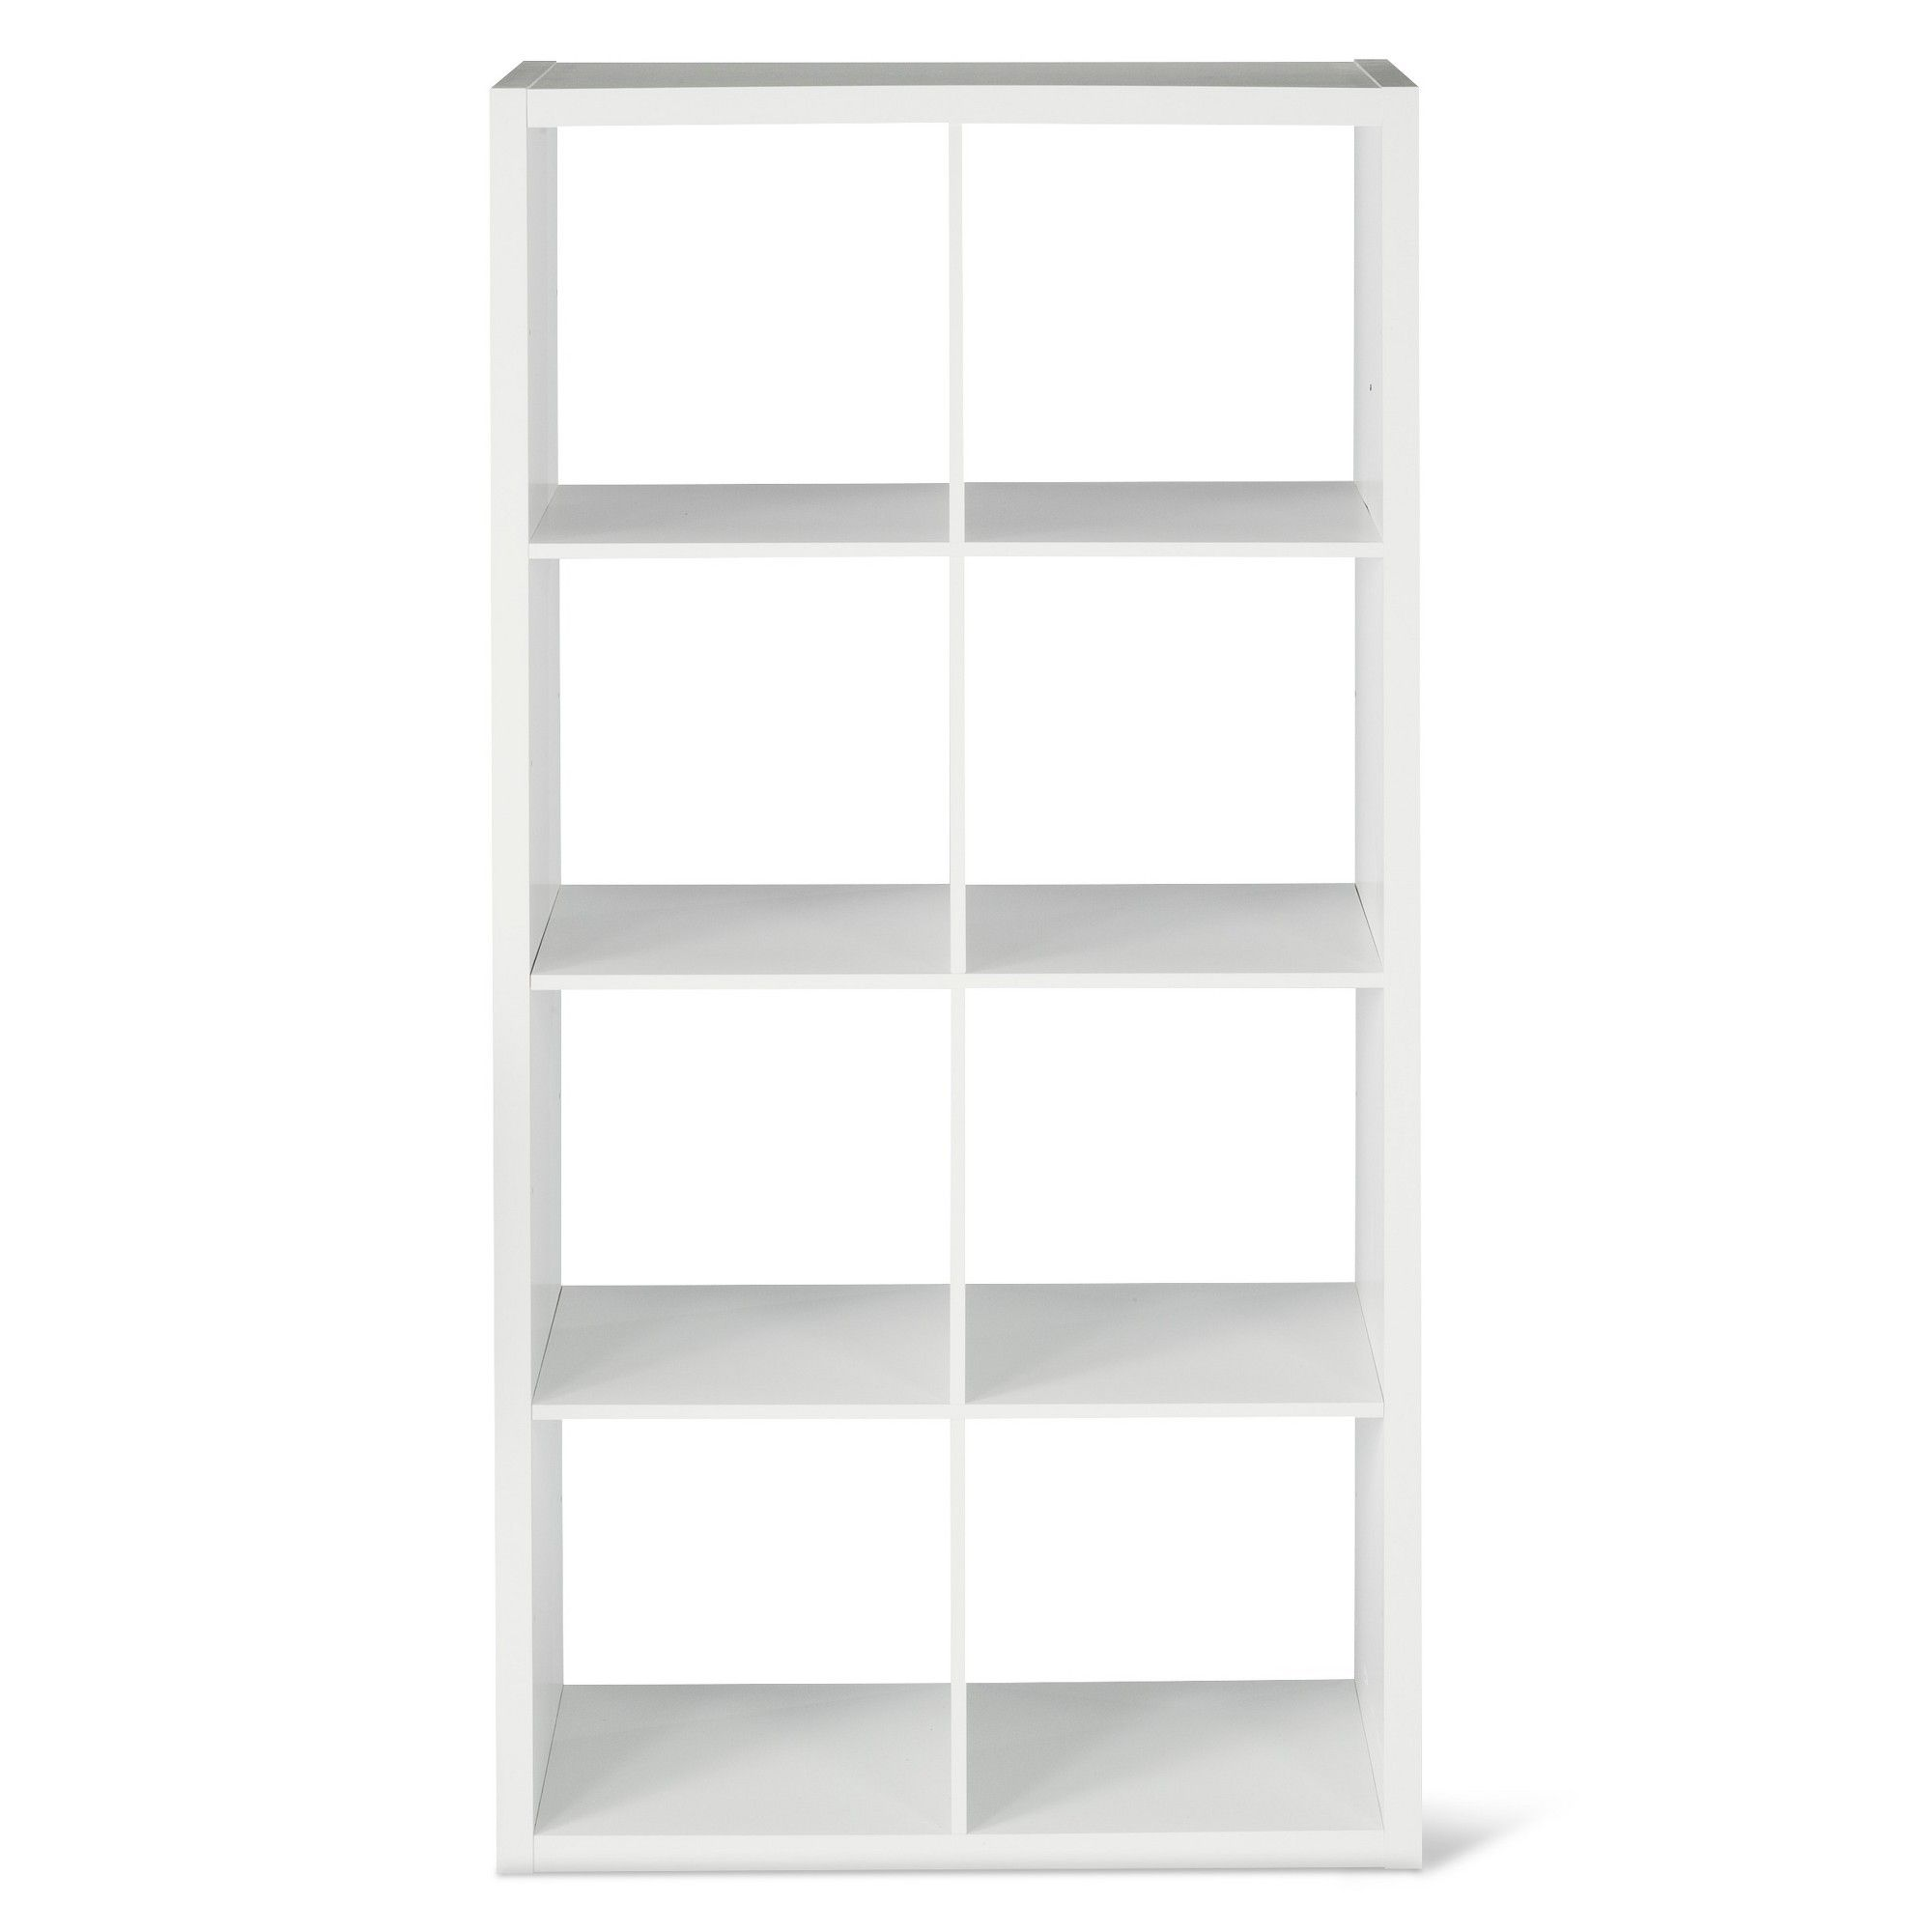 8-Cube Organizer Shelf White 13